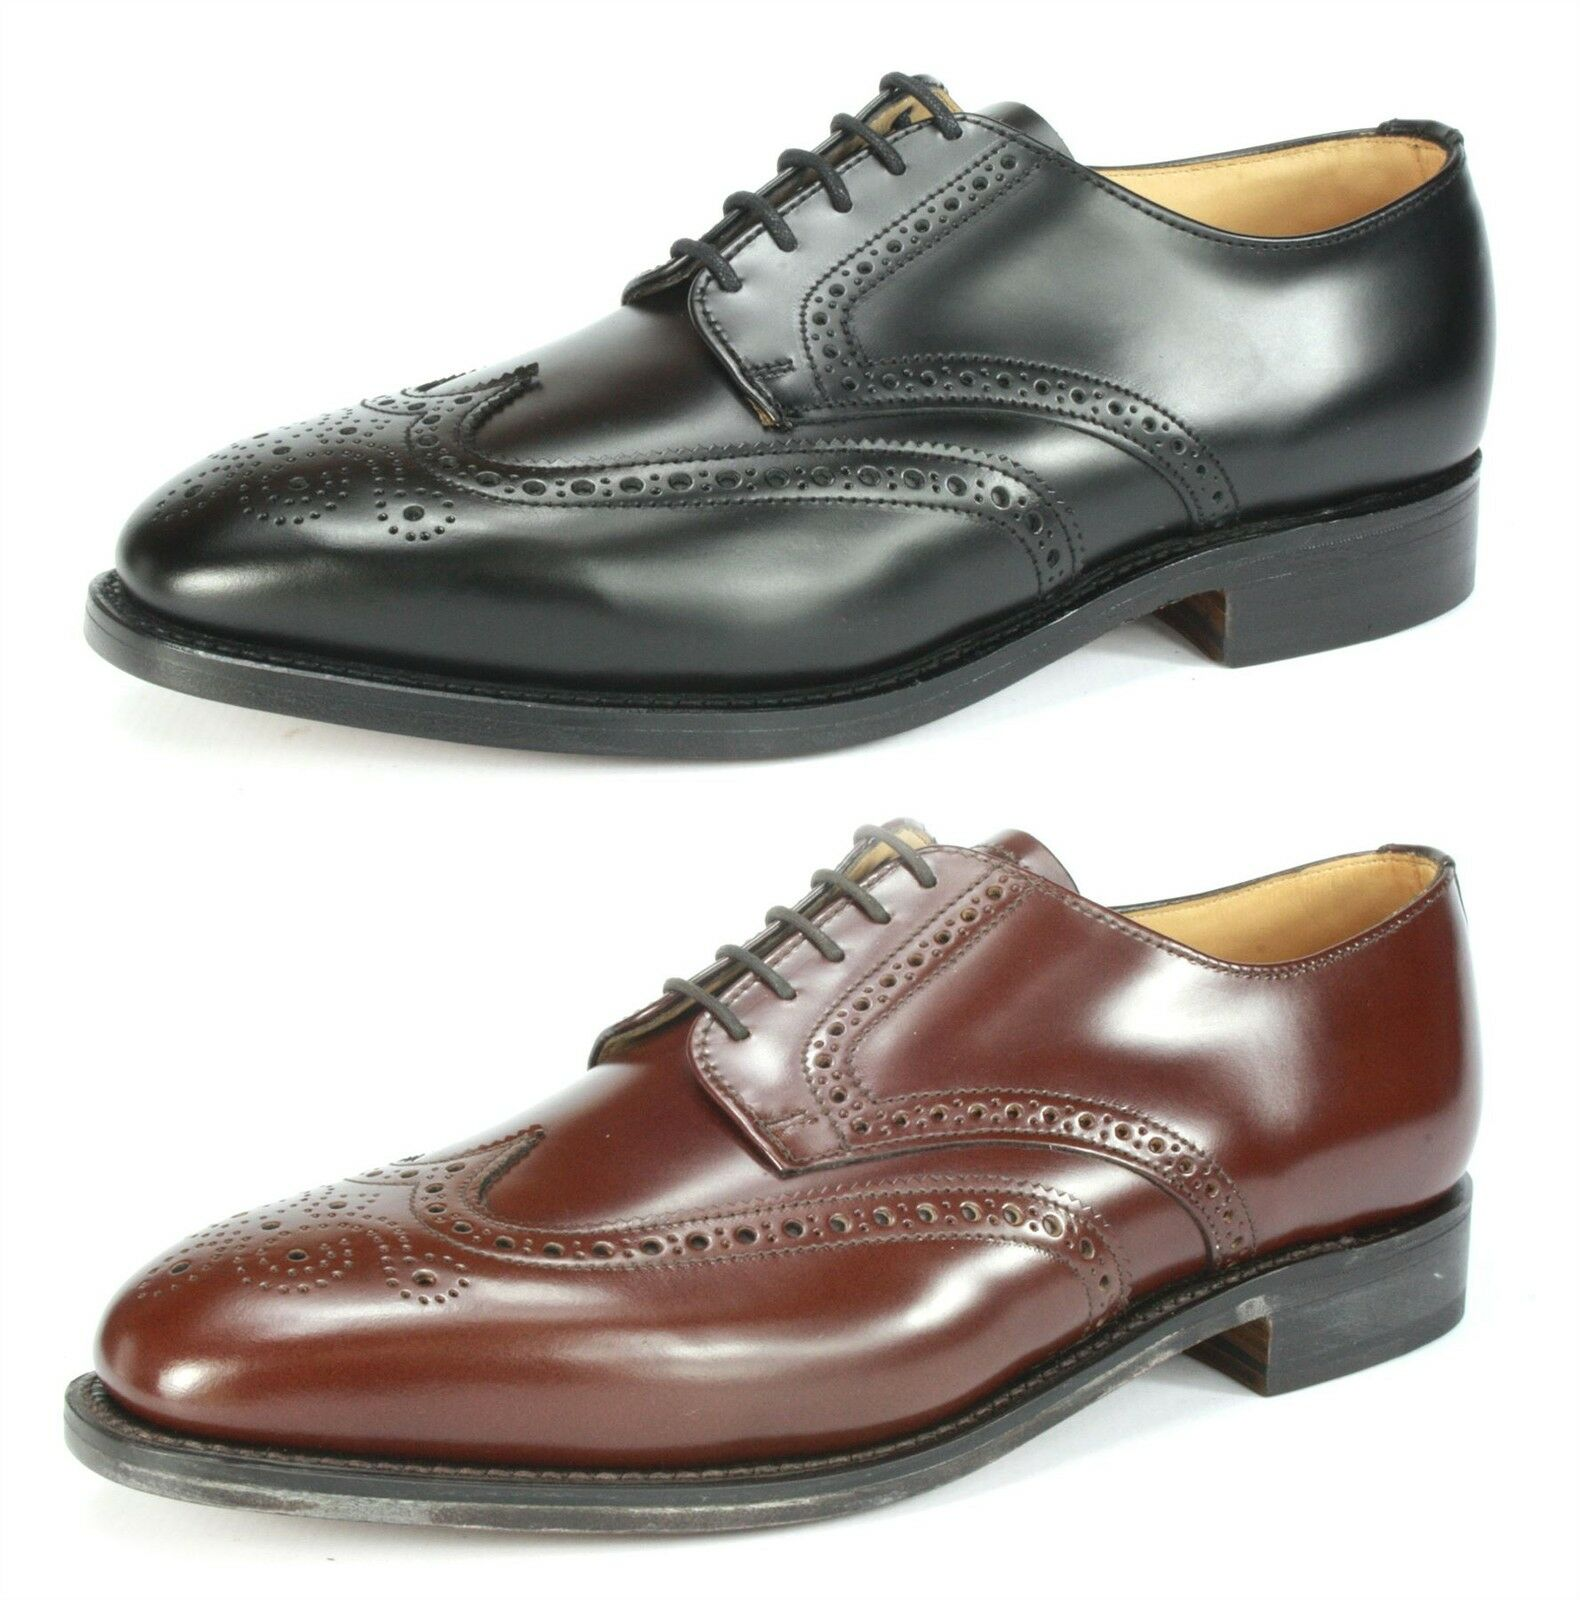 Charles Horrel Handmade in England Welted Wingtip Mens Brogue Leather Sole shoes